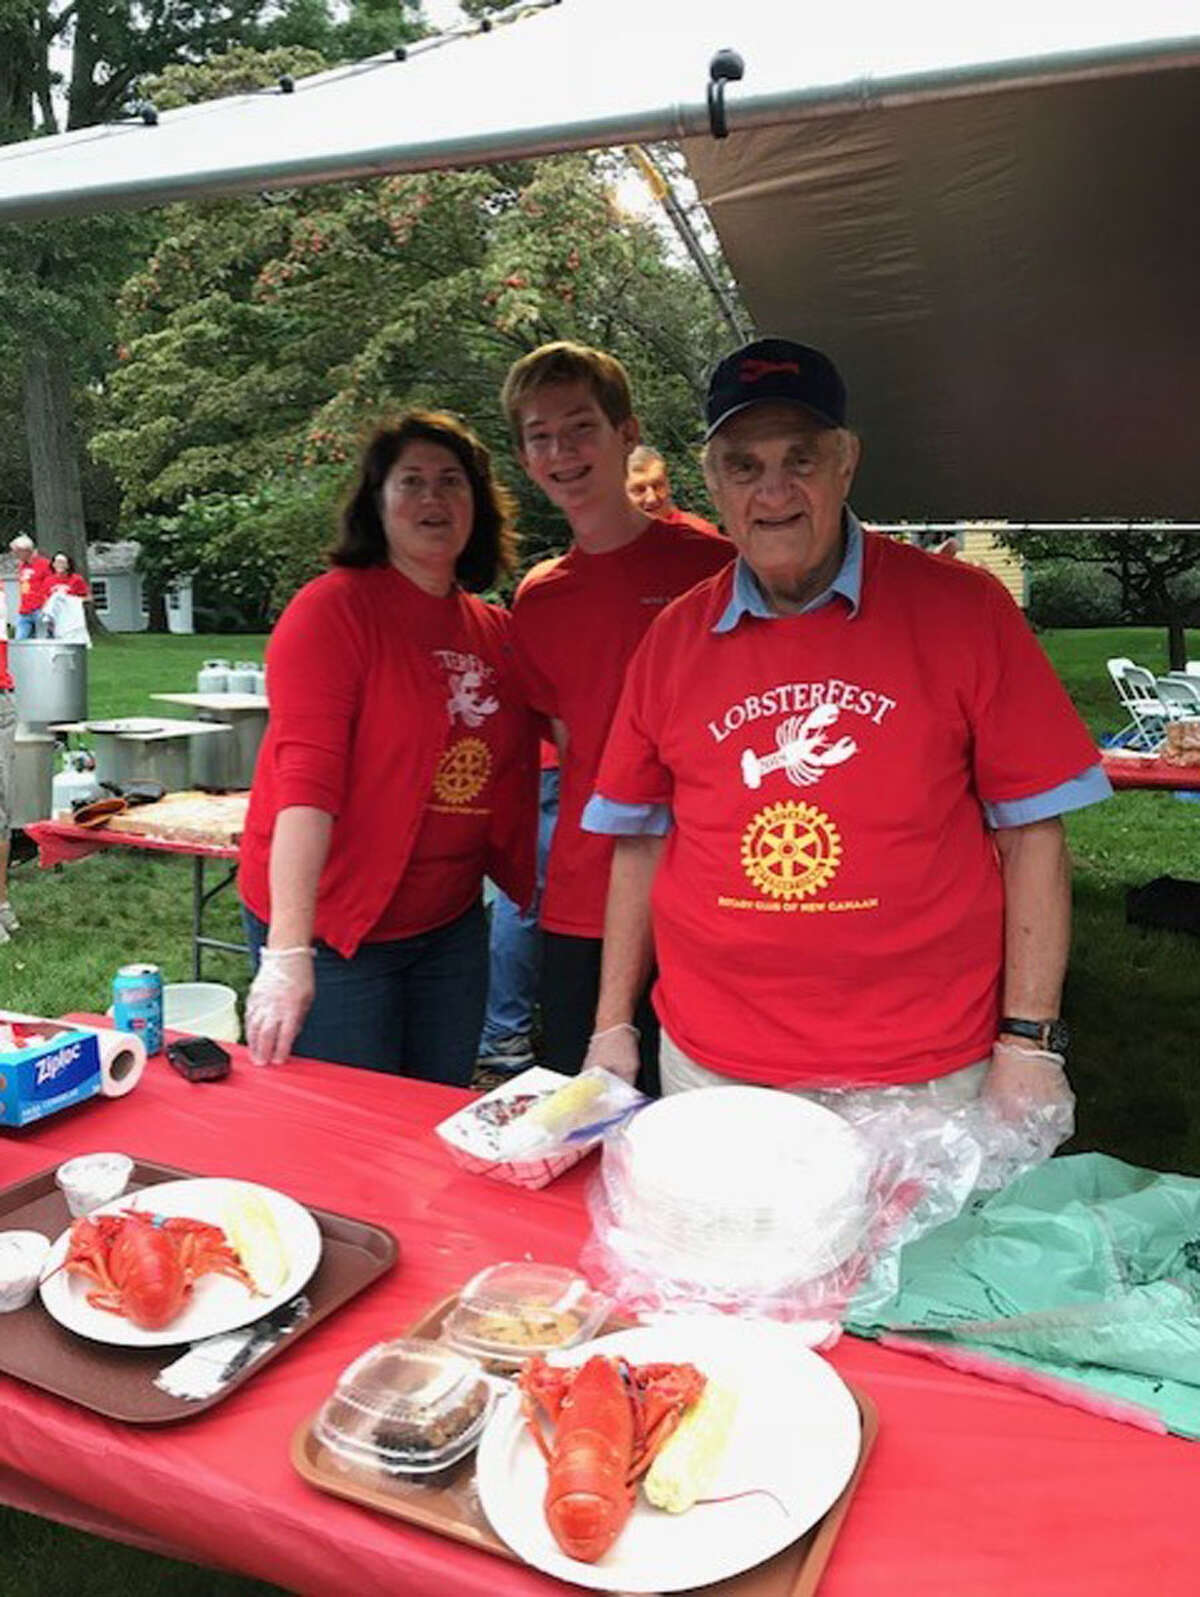 Above: Nic Butler, Anne Cheney, of Stewart's in New Canaan, and Keith Simpson, are members of New Canaan High School Service League of Boys-SLOBS. They helped out at Lobsterfest, an annual Rotary Club fundraiser, in September. SLOBS seeks new members. Below: Reid Dahil, Christopher Carratu, Jackson Oehmler, Griffin Dayton, Nicholas Lambrinos, Doyle Catlin, Colin Byrne of New Canaan High School Service League of Boys-SLOBS serve at the Rotary Club's Lobsterfest which is held every September. SLOBs seeks new members.